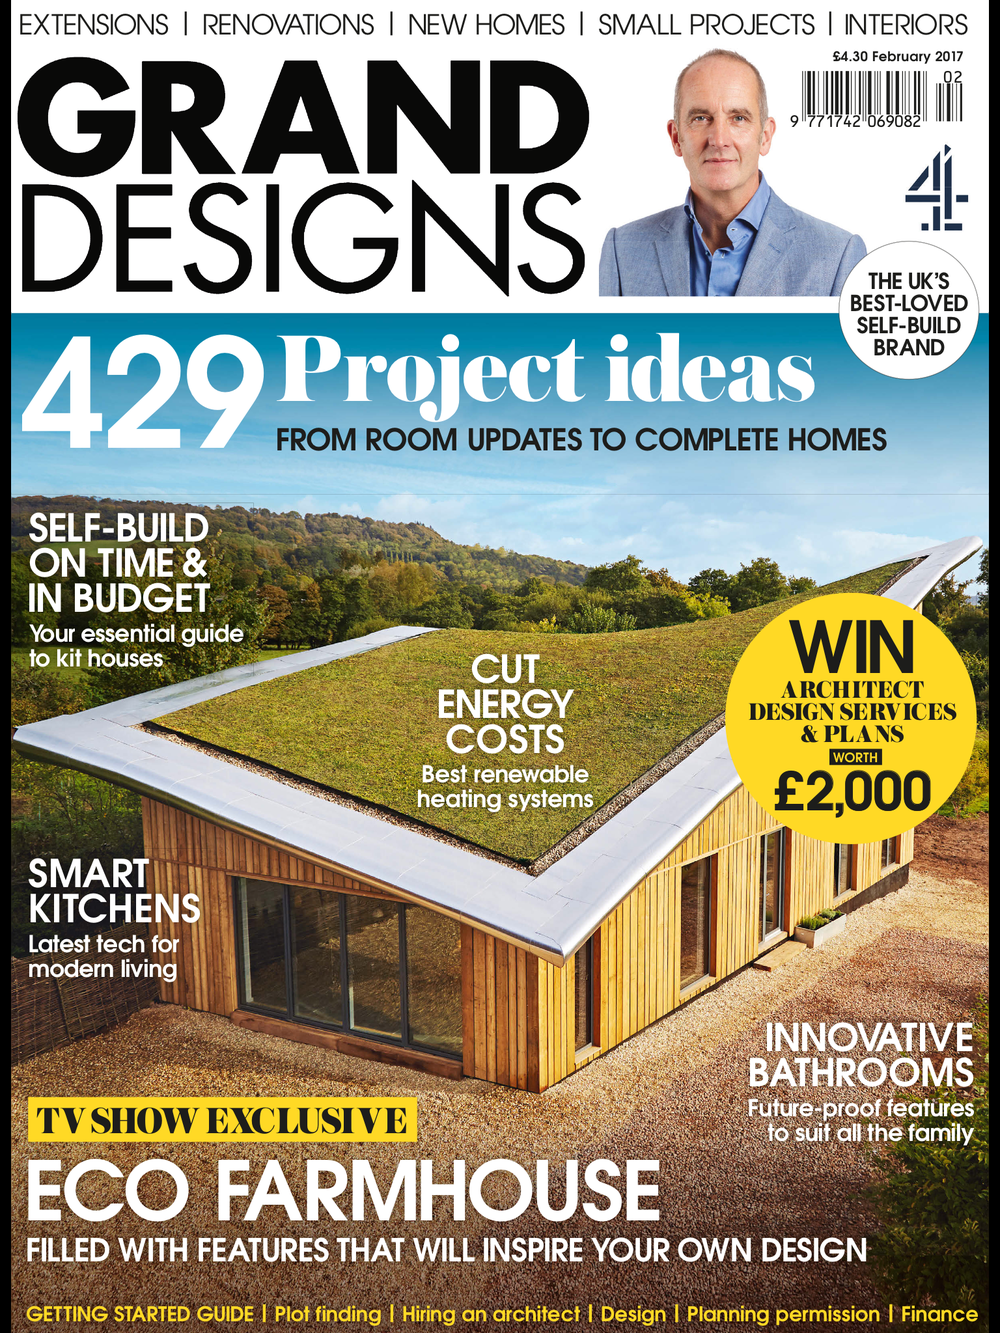 Grand Designs Magazine - Feb 17